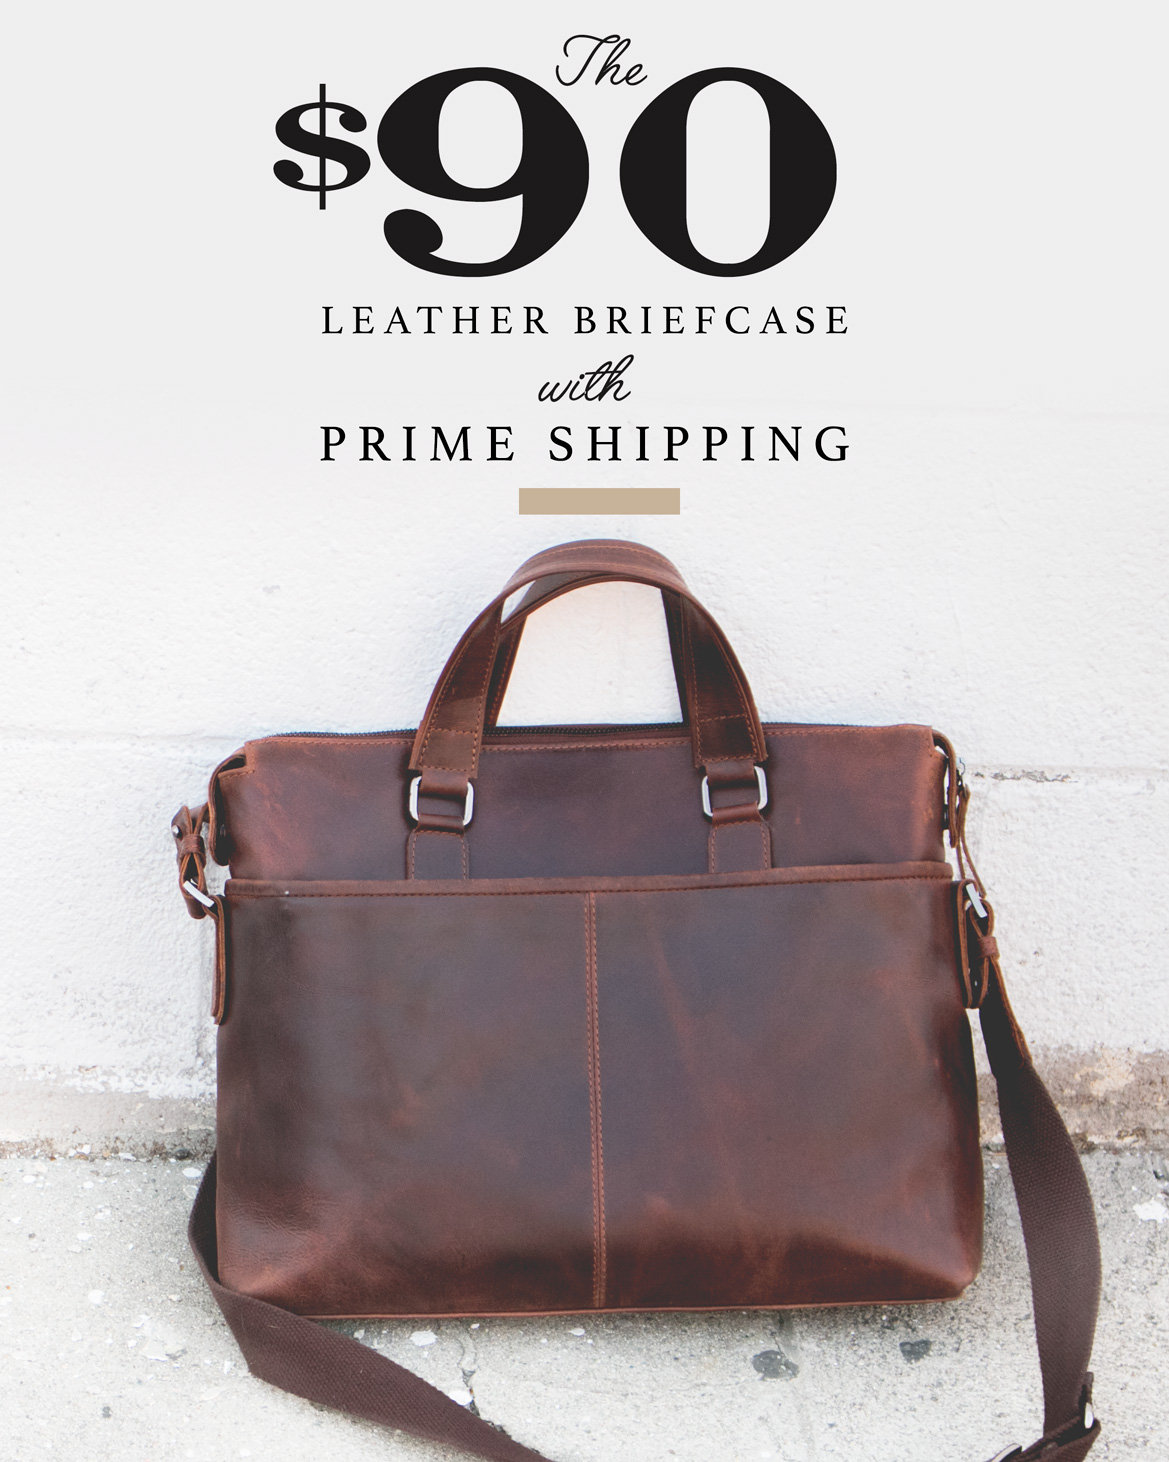 Affordable leather briefcase